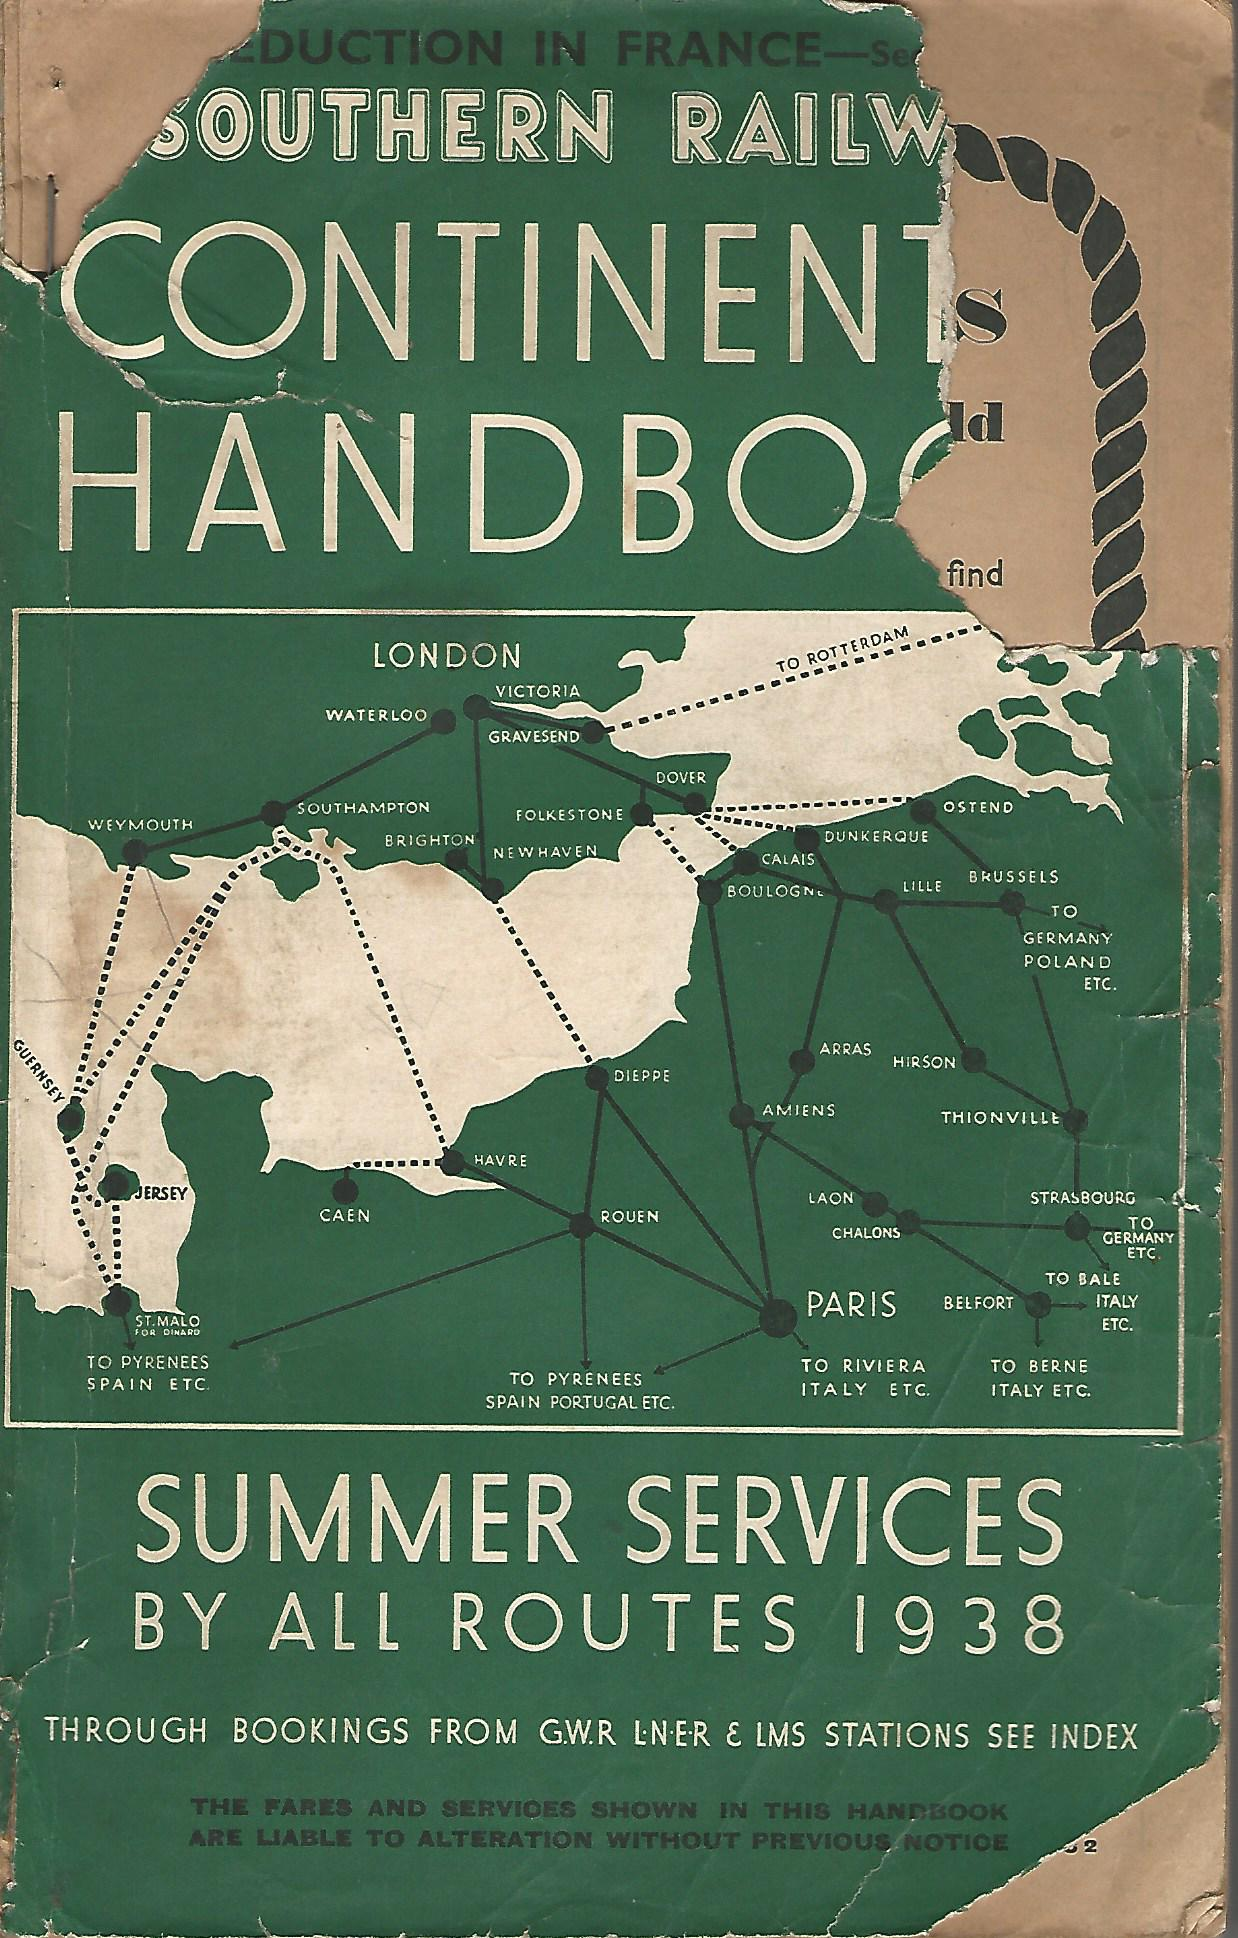 Image for Southern Railway Continental Handbook Summer Services 1938.